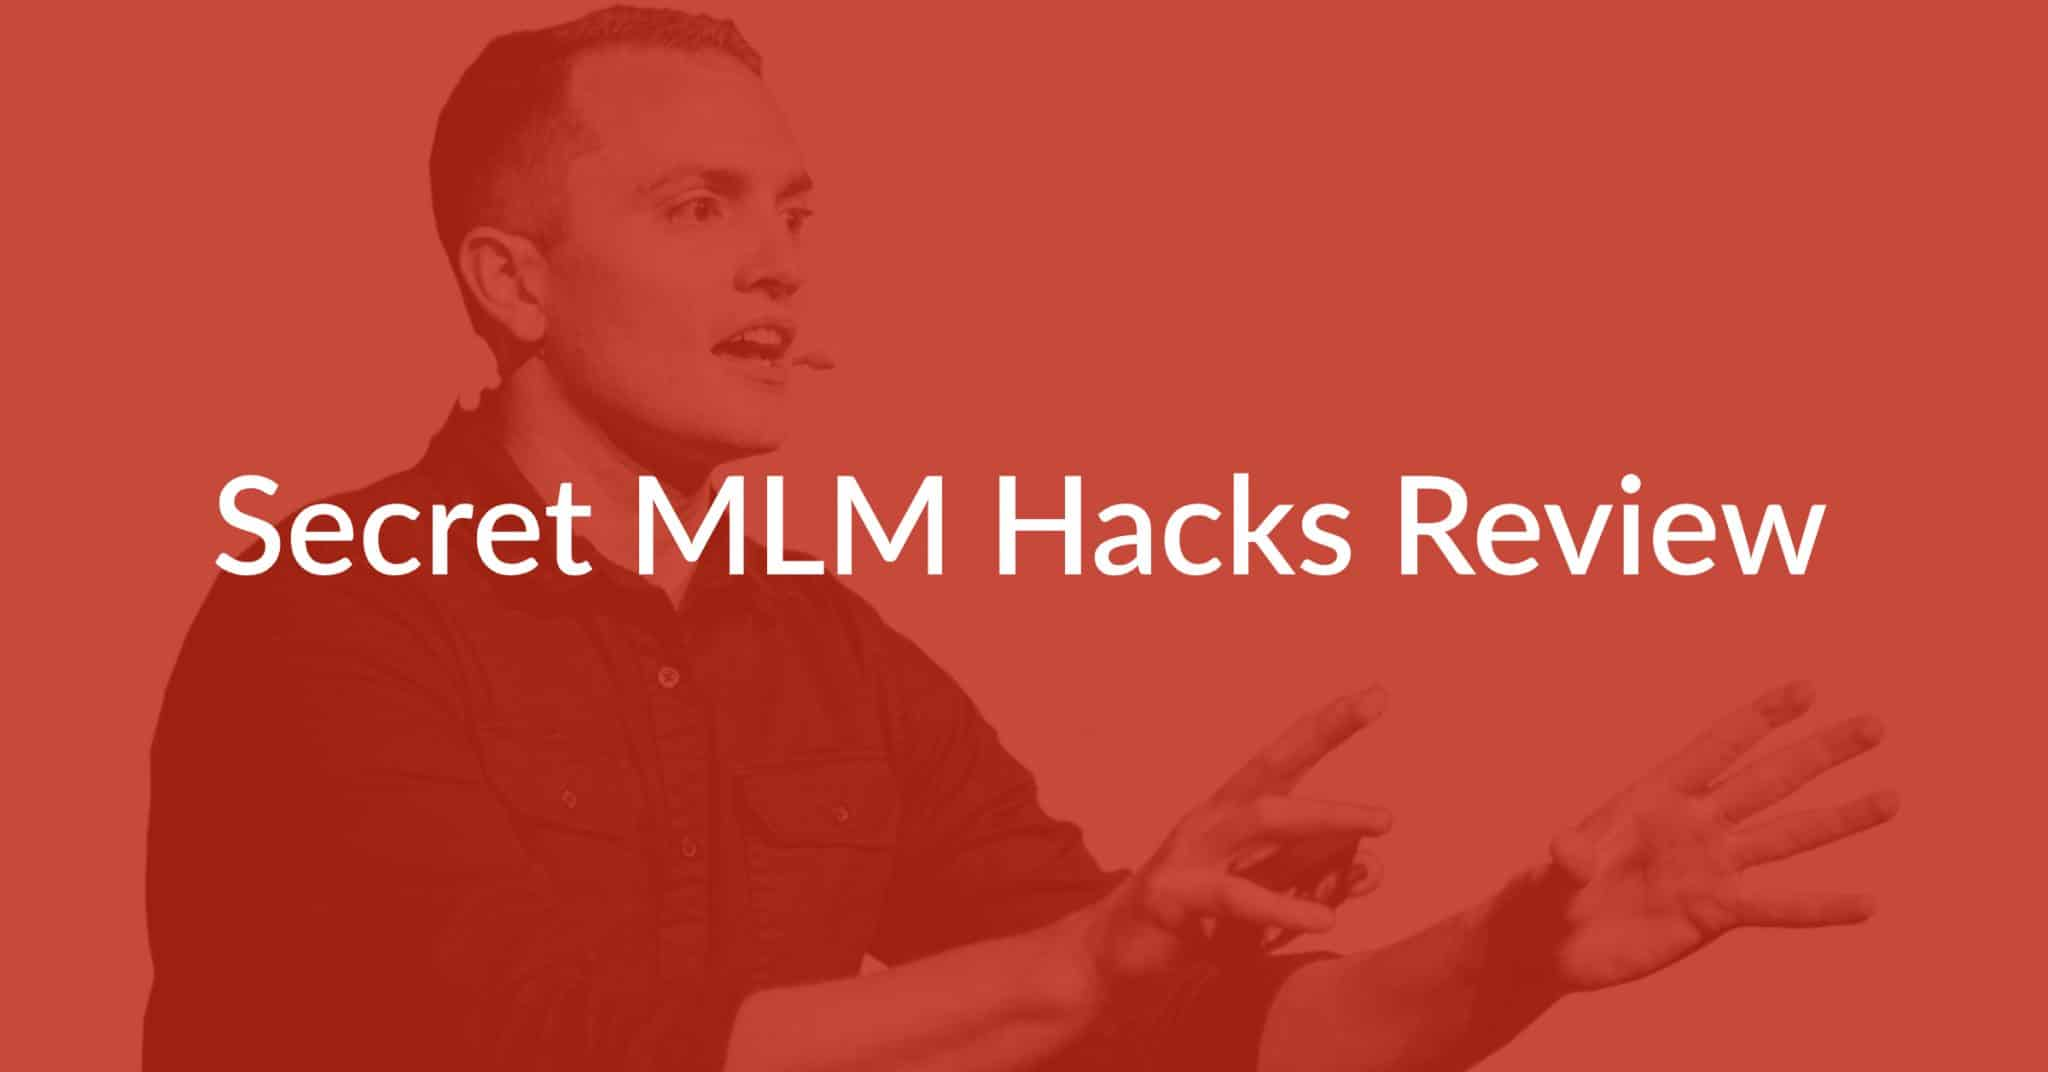 Secret MLM Hacks Review: Is Steve Larsen's Course Worth It?